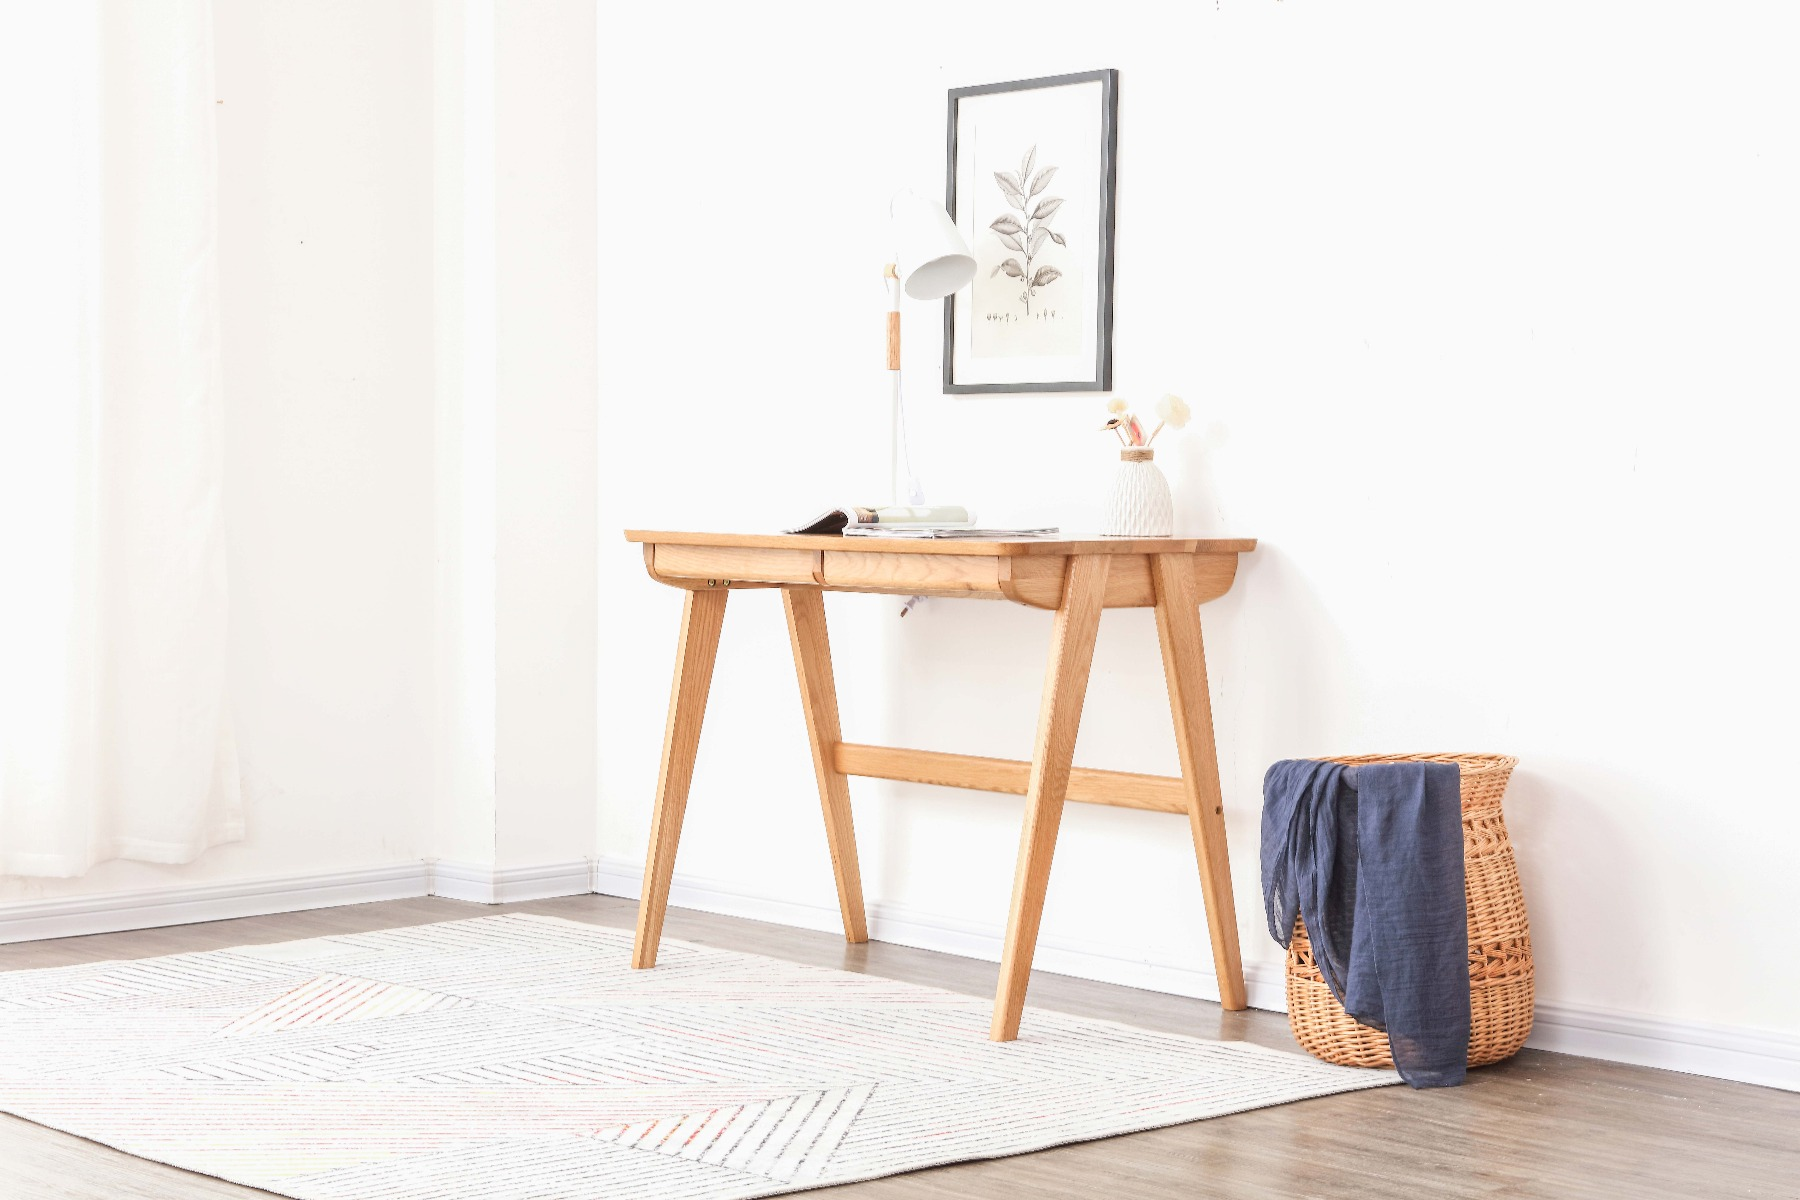 The Nara Study Table is designed to be clean, light and natural. The perfect study table for the modern minimalist.